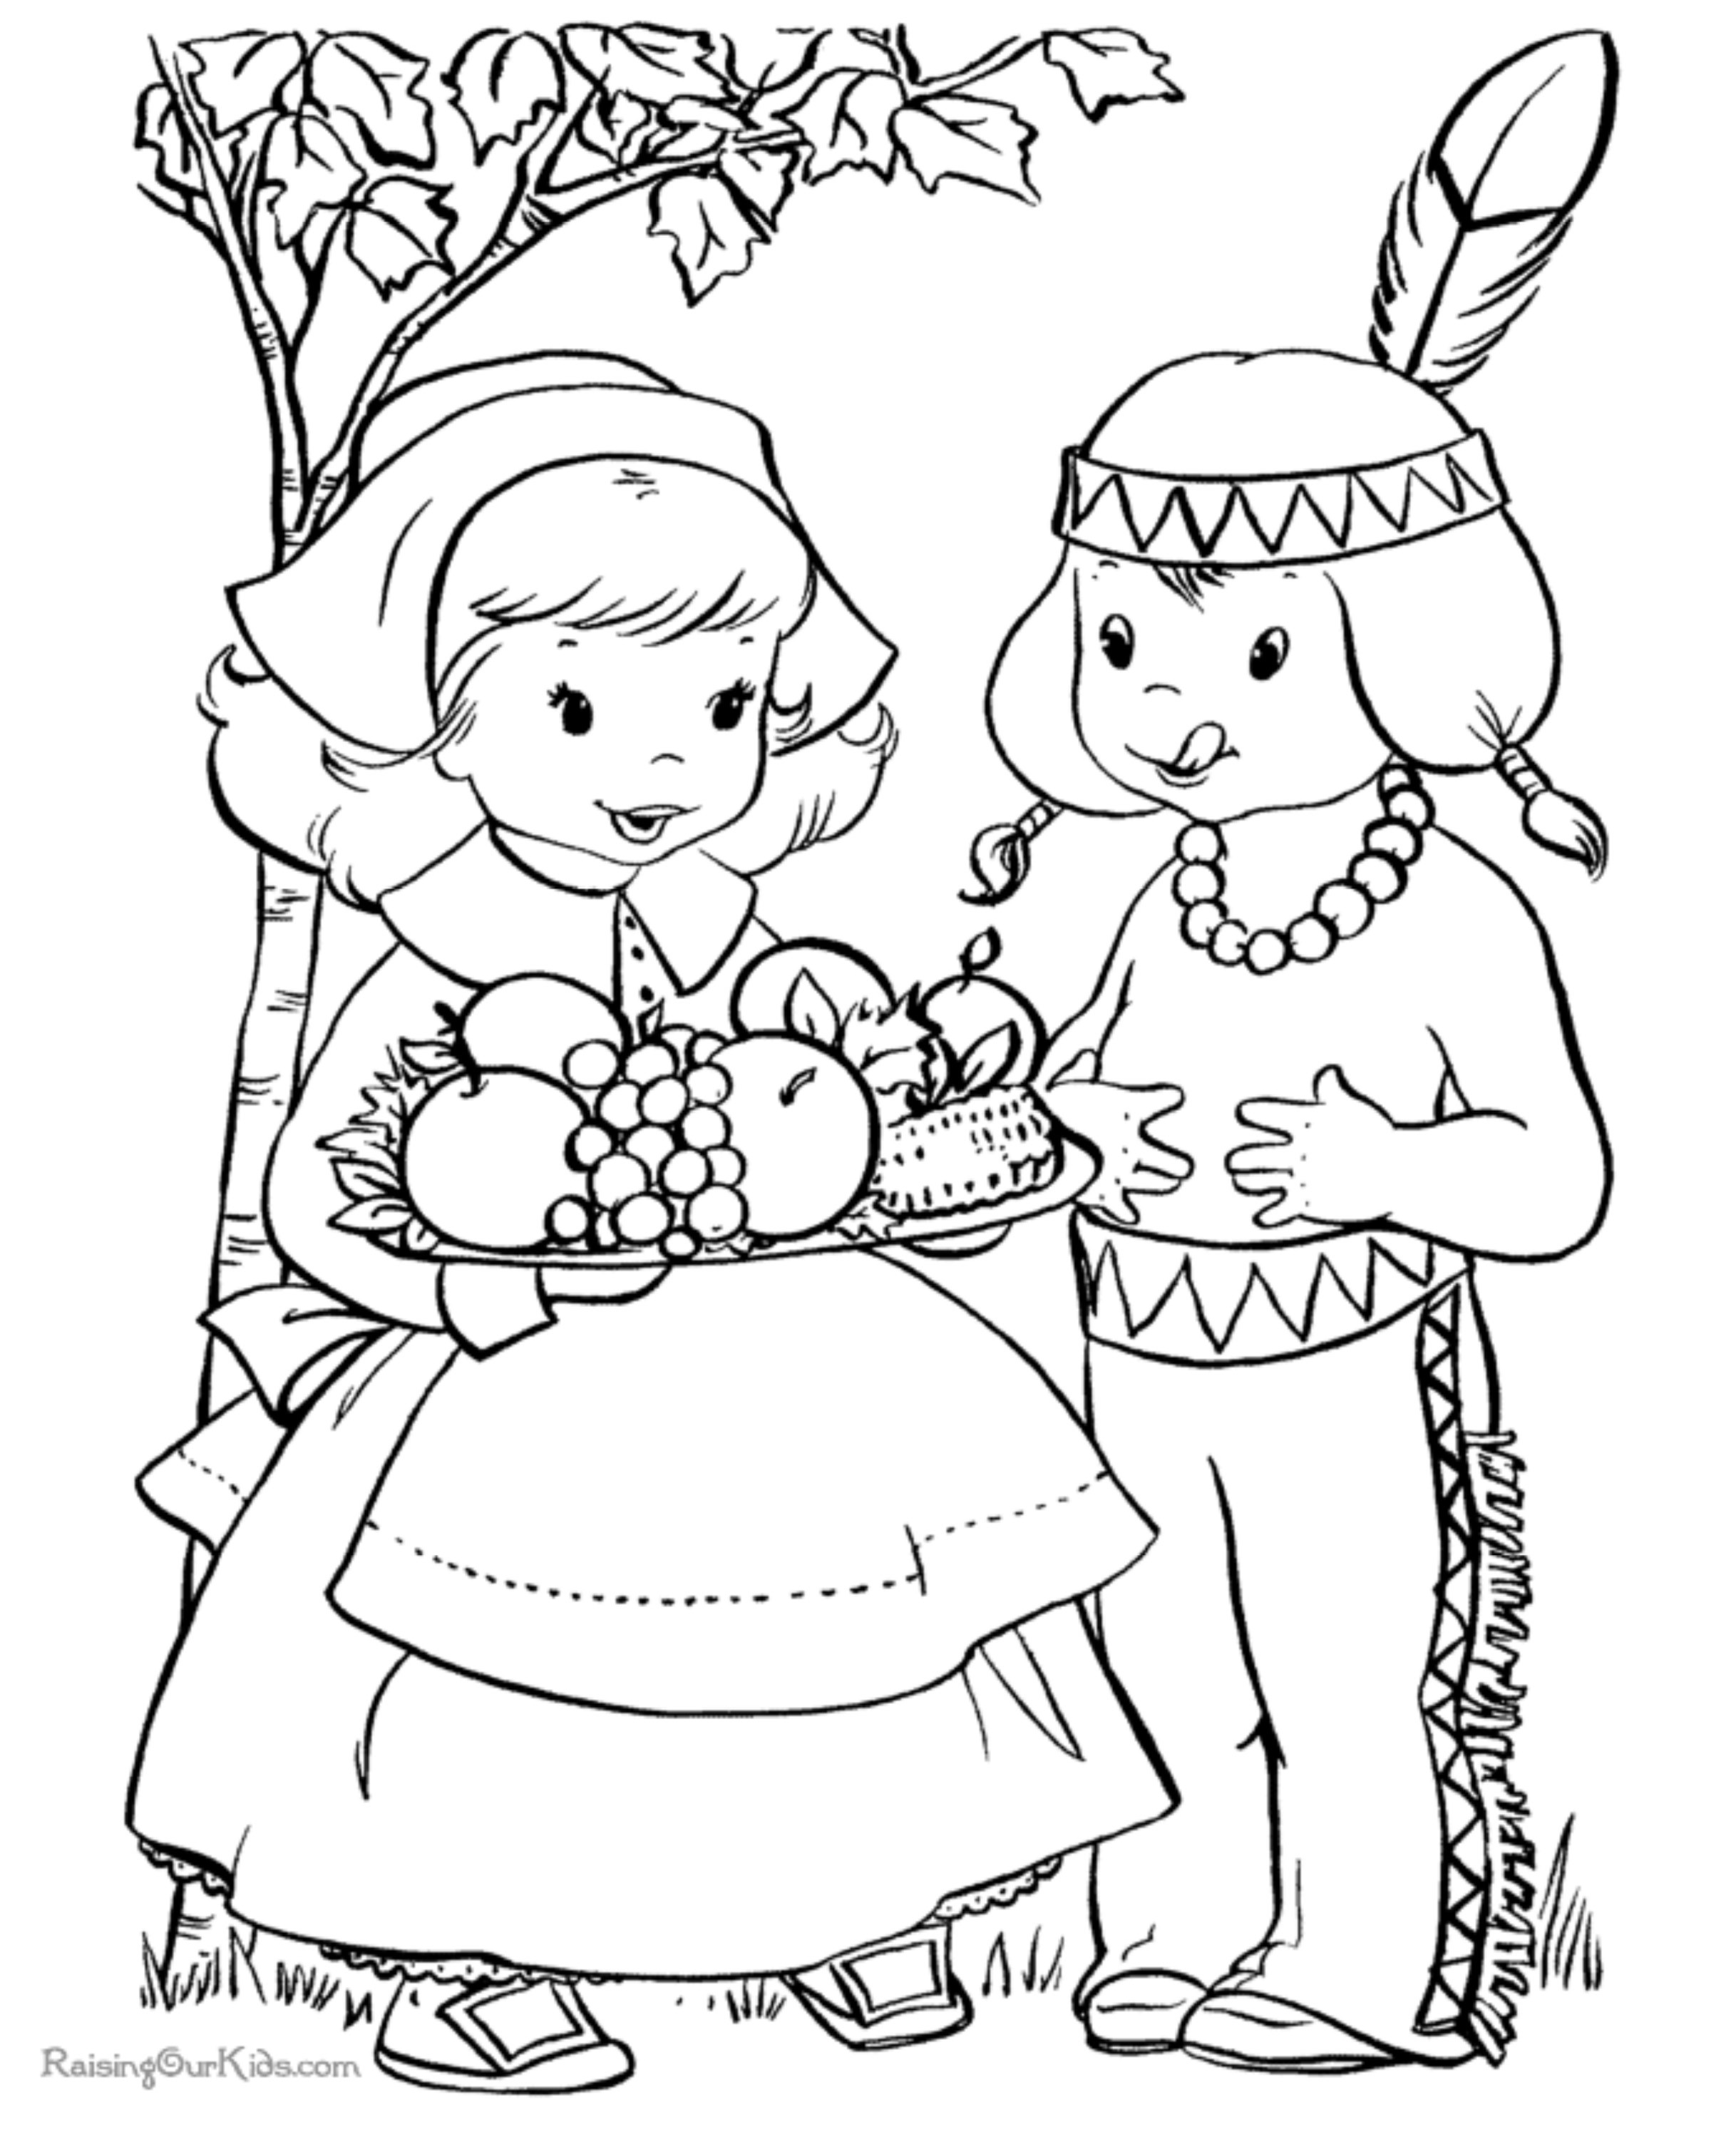 Thanksgiving Turkey Coloring Pages Printables  Kid's Coloring Pages Northern News